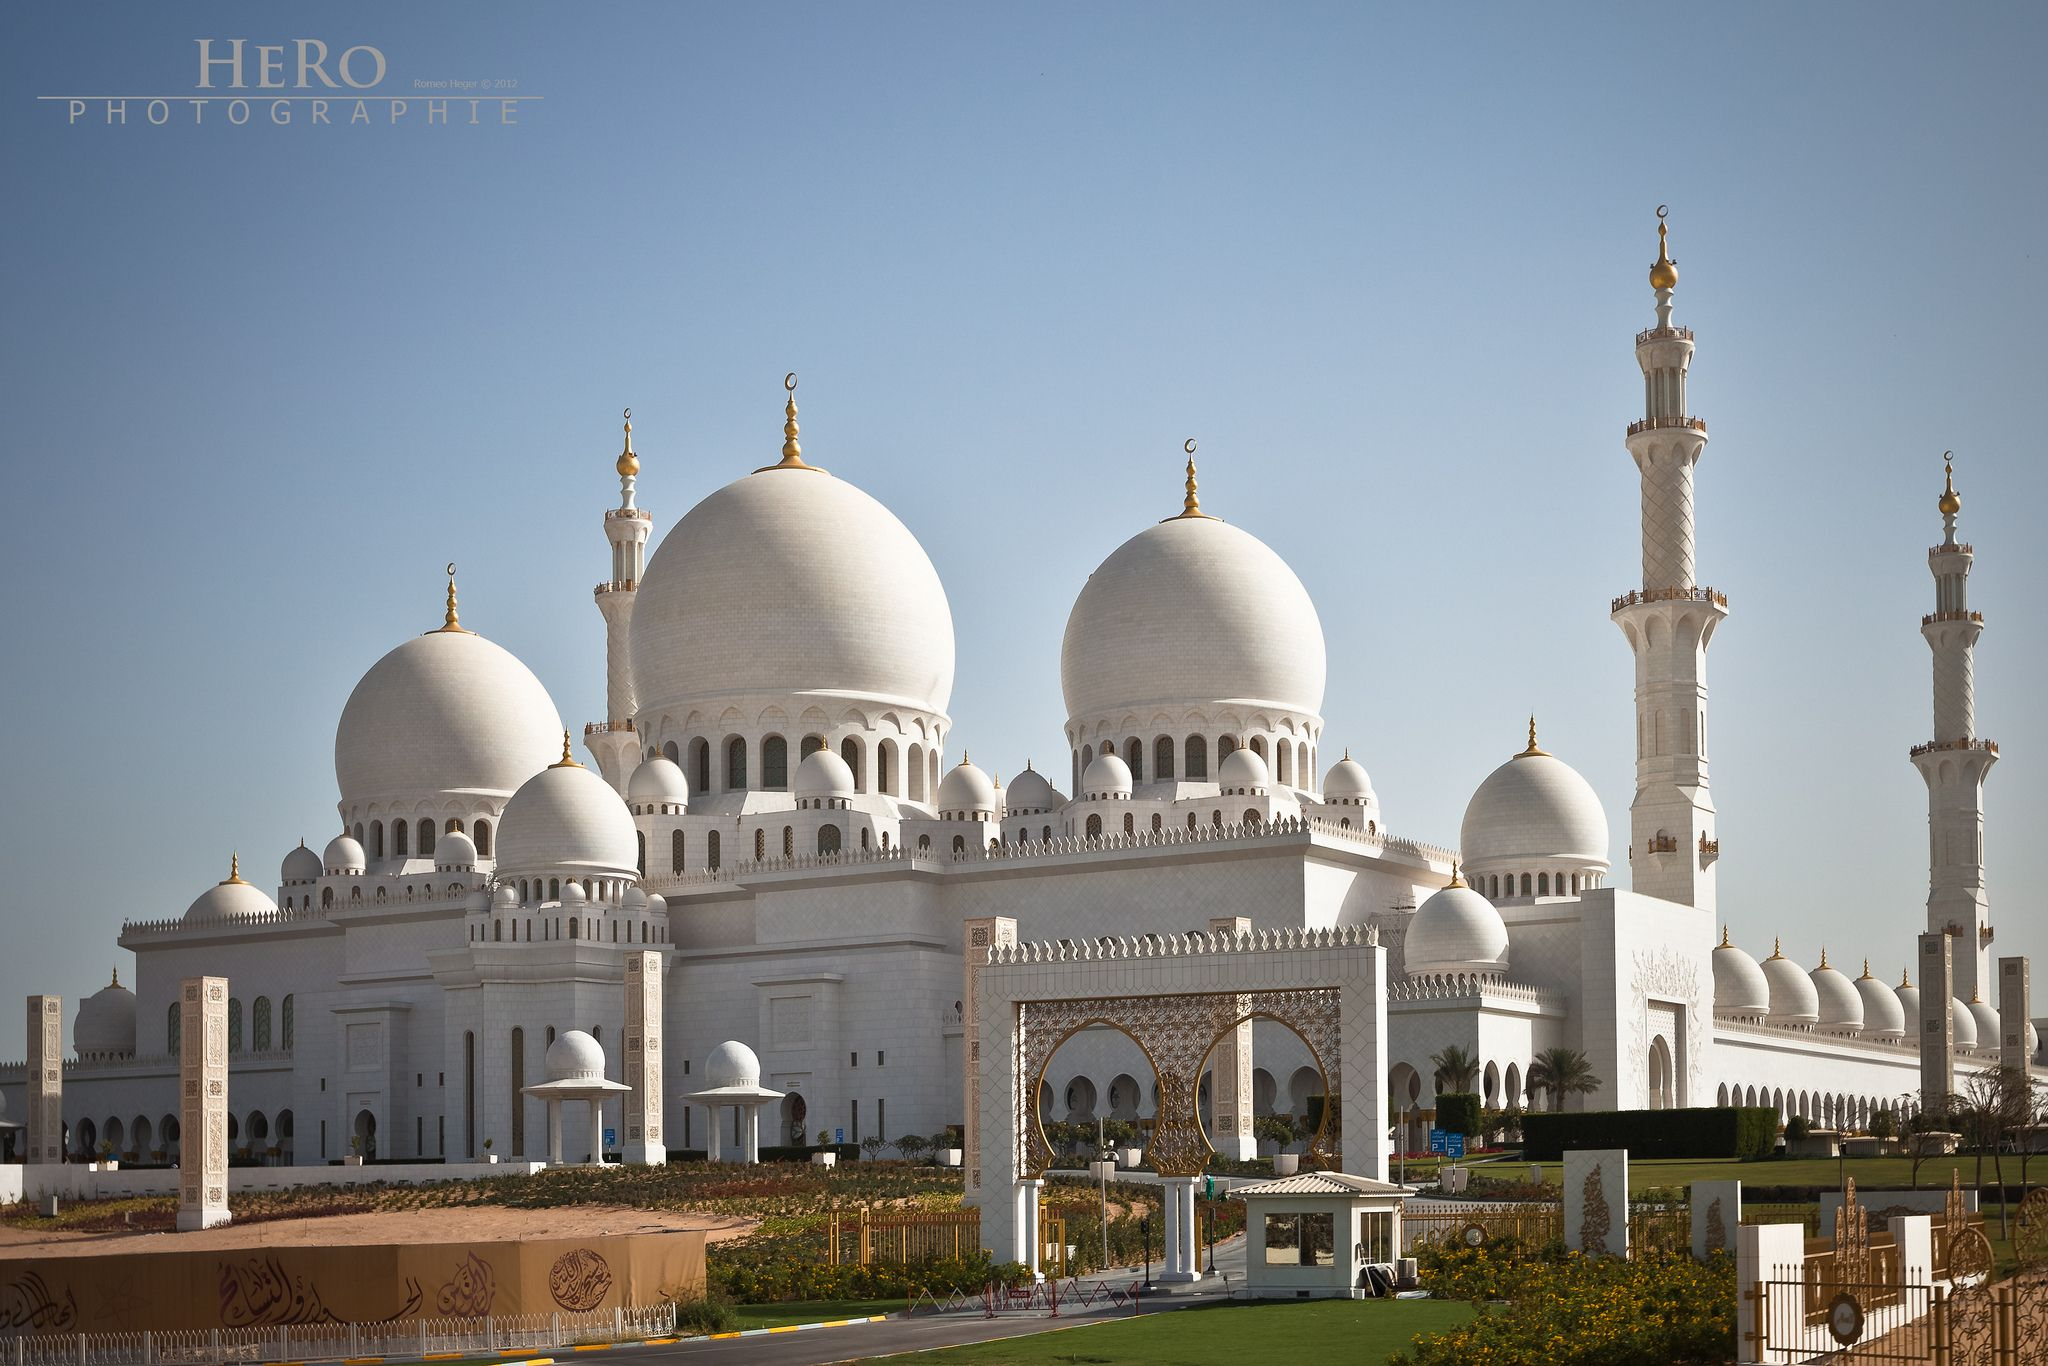 Canon EOS 5D Mark II, EF16-35mm f/2.8L II USM, 35mm - f/6.3 - 1/320 - ISO-100 ==================== Sheikh Zayed Grand Mosque - this architectural work of art is one the world's largest mosques, with a capacity for an astonishing 41,000 worshippers. It features 82 domes, over a 1,000 columns, 24 carat gold gilded chandeliers and the world's largest hand knotted carpet. The ...